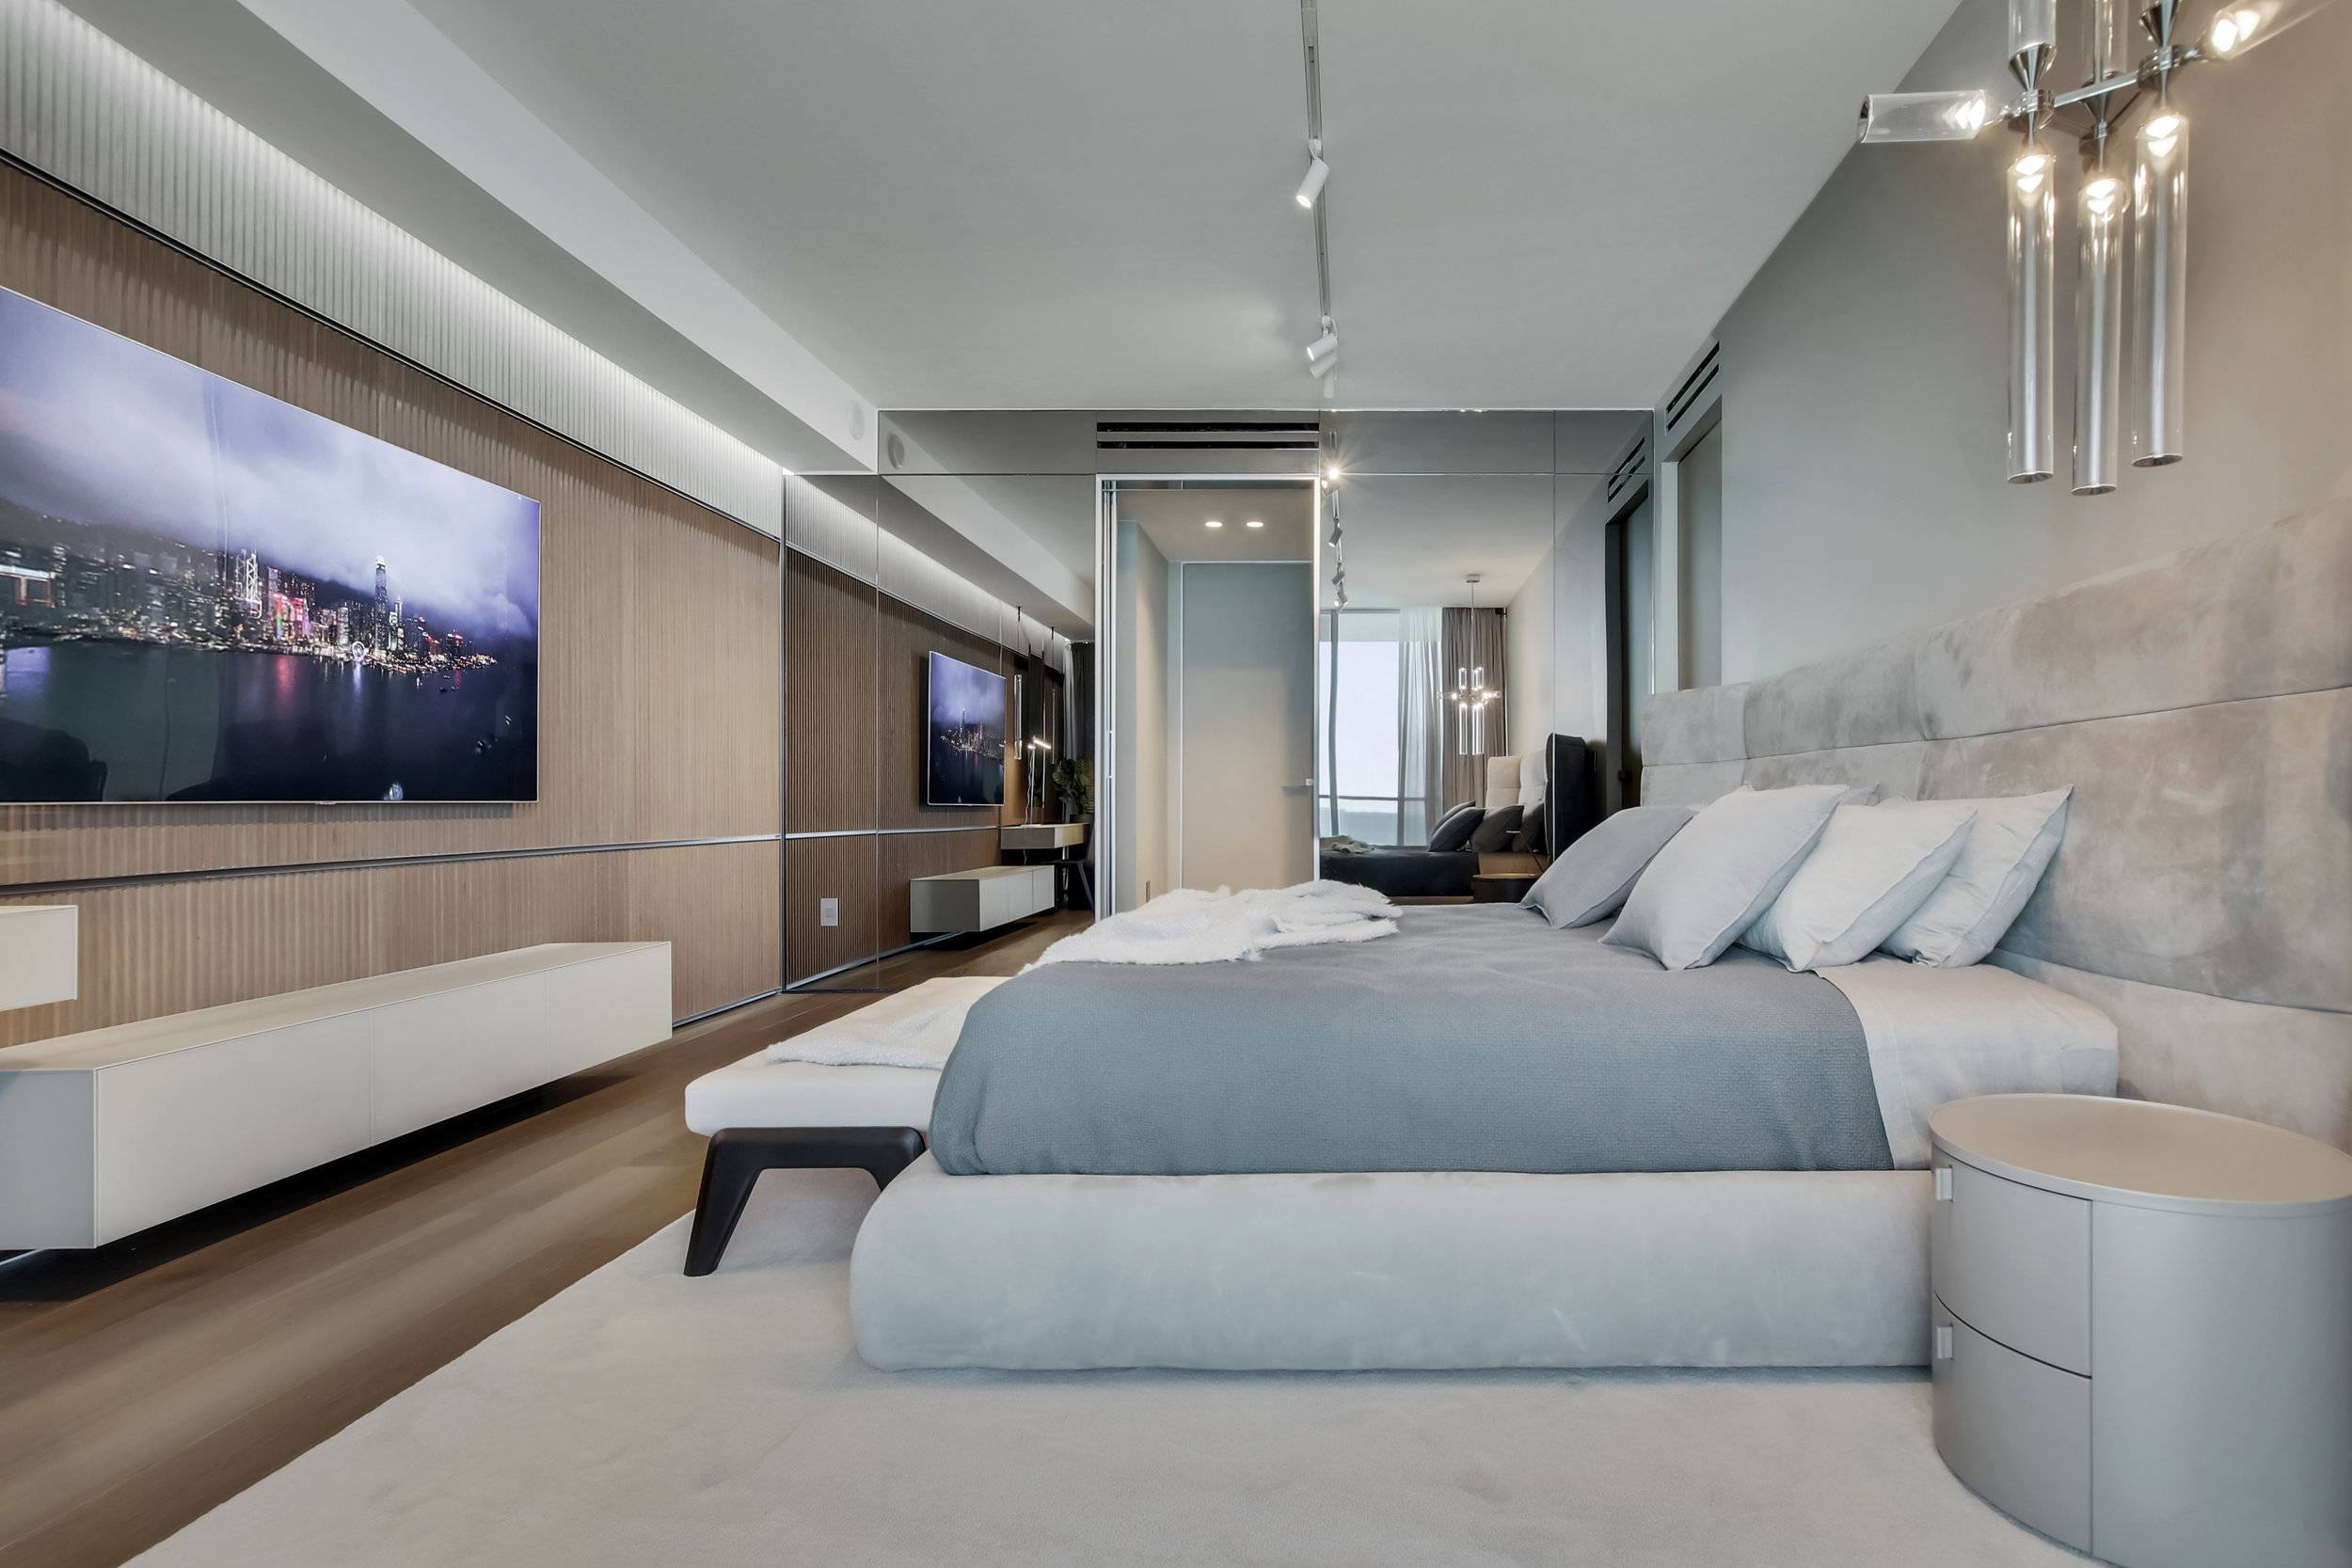 Check Out This One-Of-A-Kind, Ultra-Luxe YoDezeen-Designed Residence In Oceana Bal Harbour